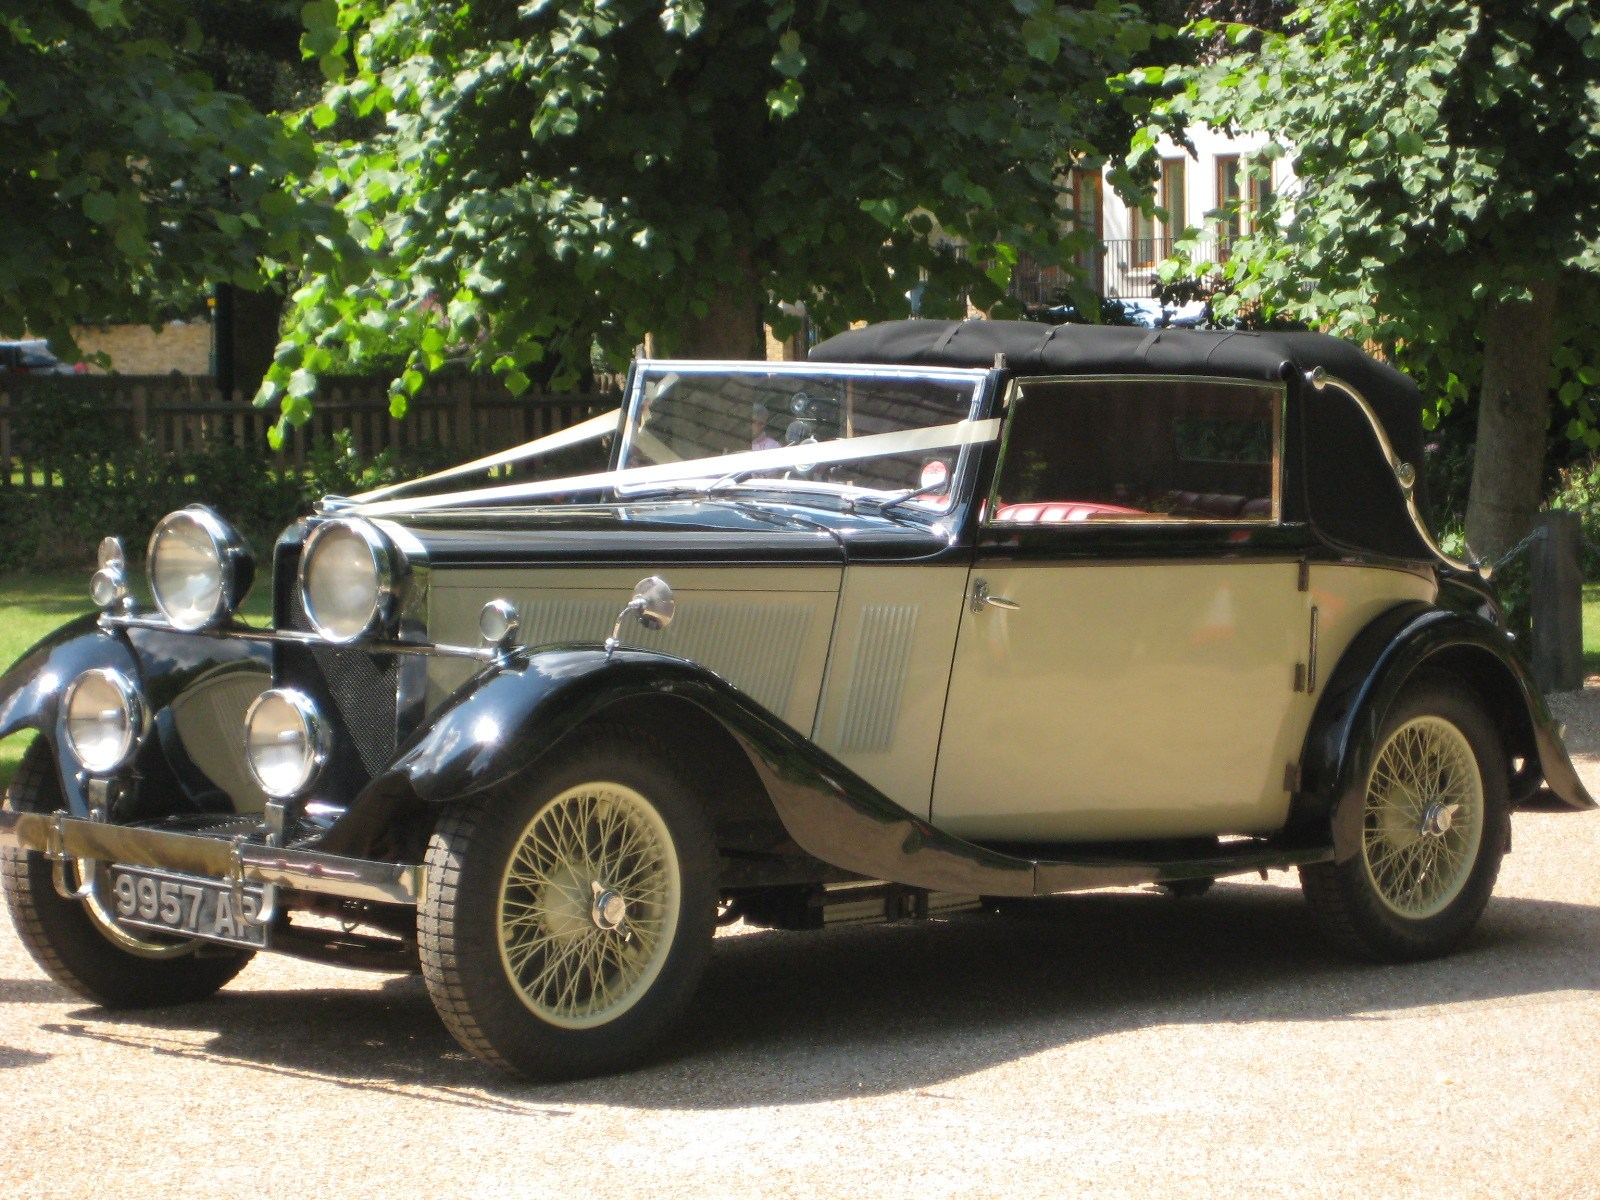 Our Vintage wedding cars to hire: Roesch Talbot Drophead Coupé